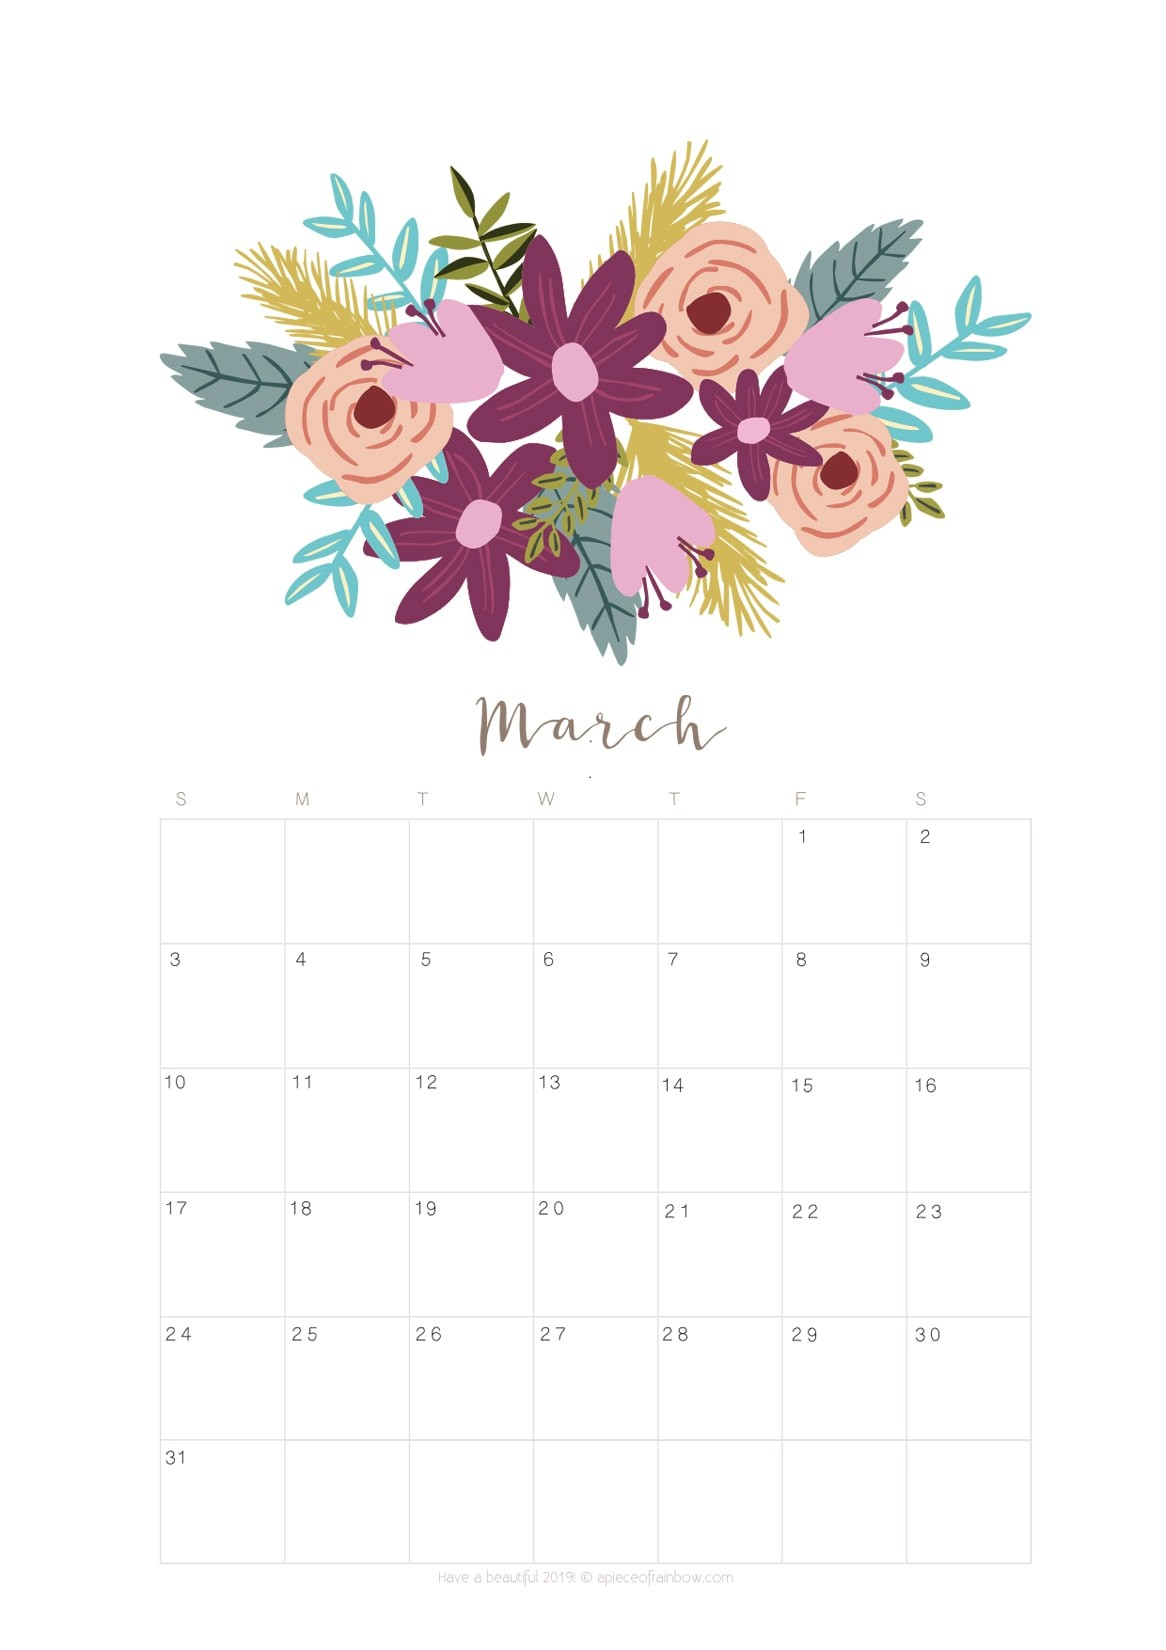 March Calendar 2019 Más Actual Printable March 2019 Calendar Monthly Planner 2 Designs Flowers Of March Calendar 2019 Más Recientes March 2019 Wall Calendar Colorful Sketch Horizontal Template Letter